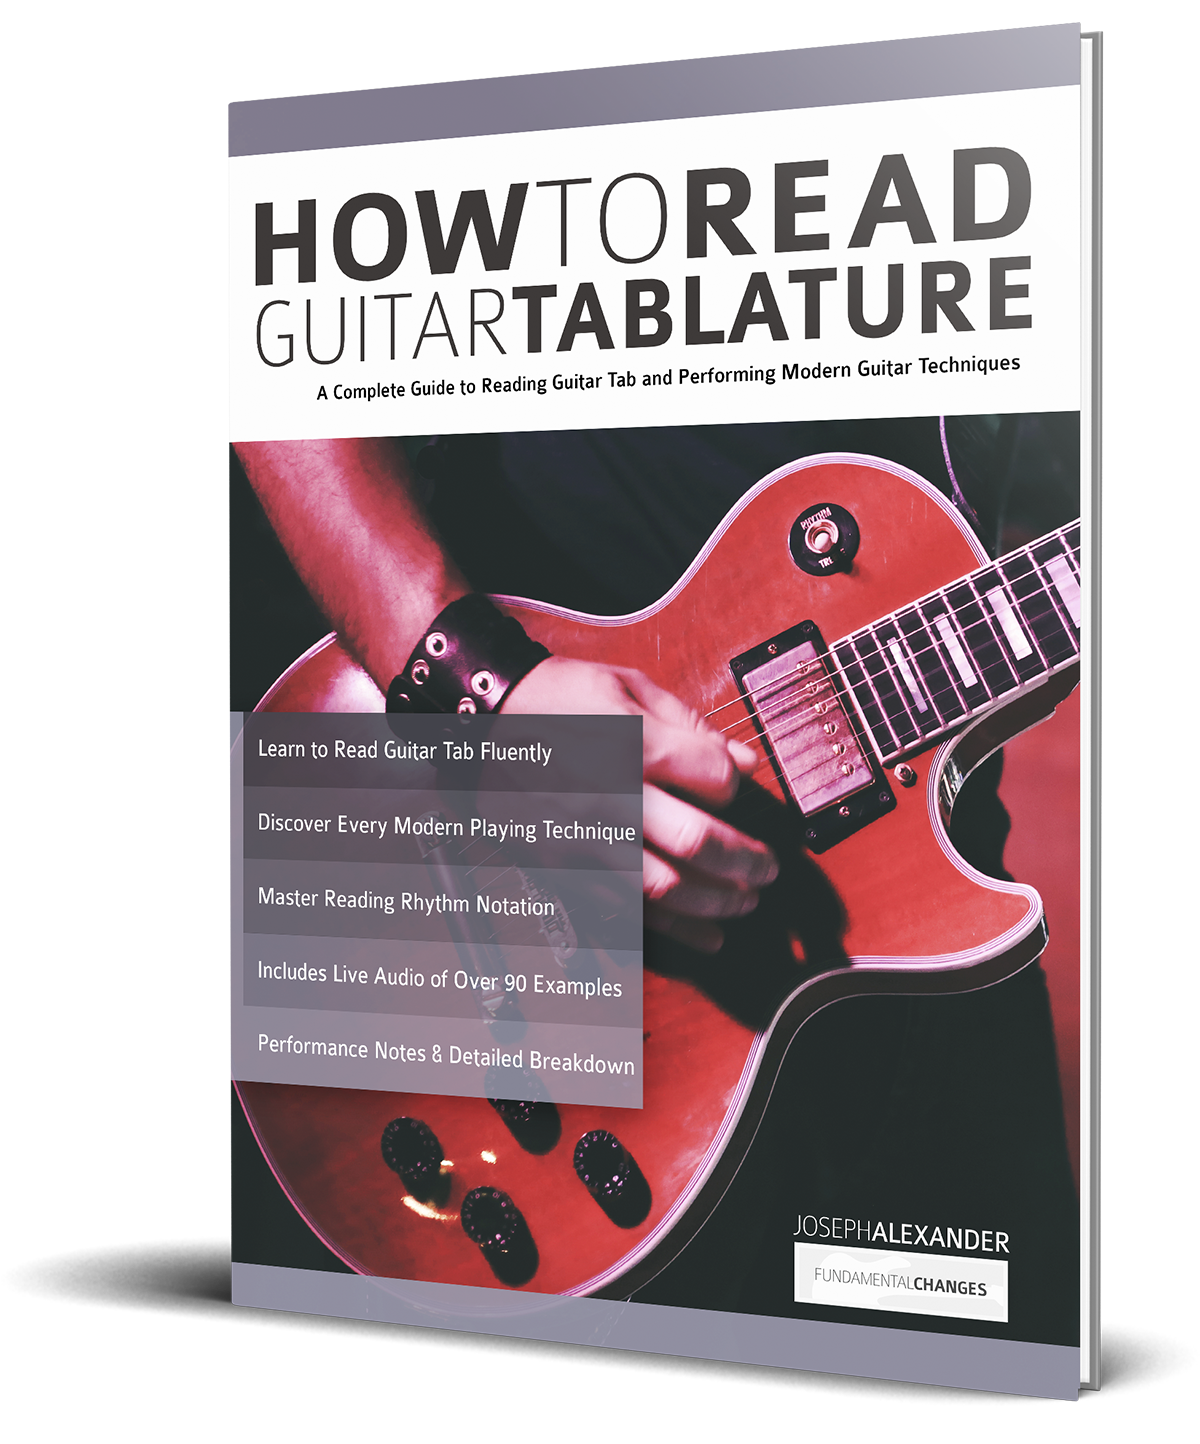 how to read guitar tablature fundamental changes music book publishing. Black Bedroom Furniture Sets. Home Design Ideas